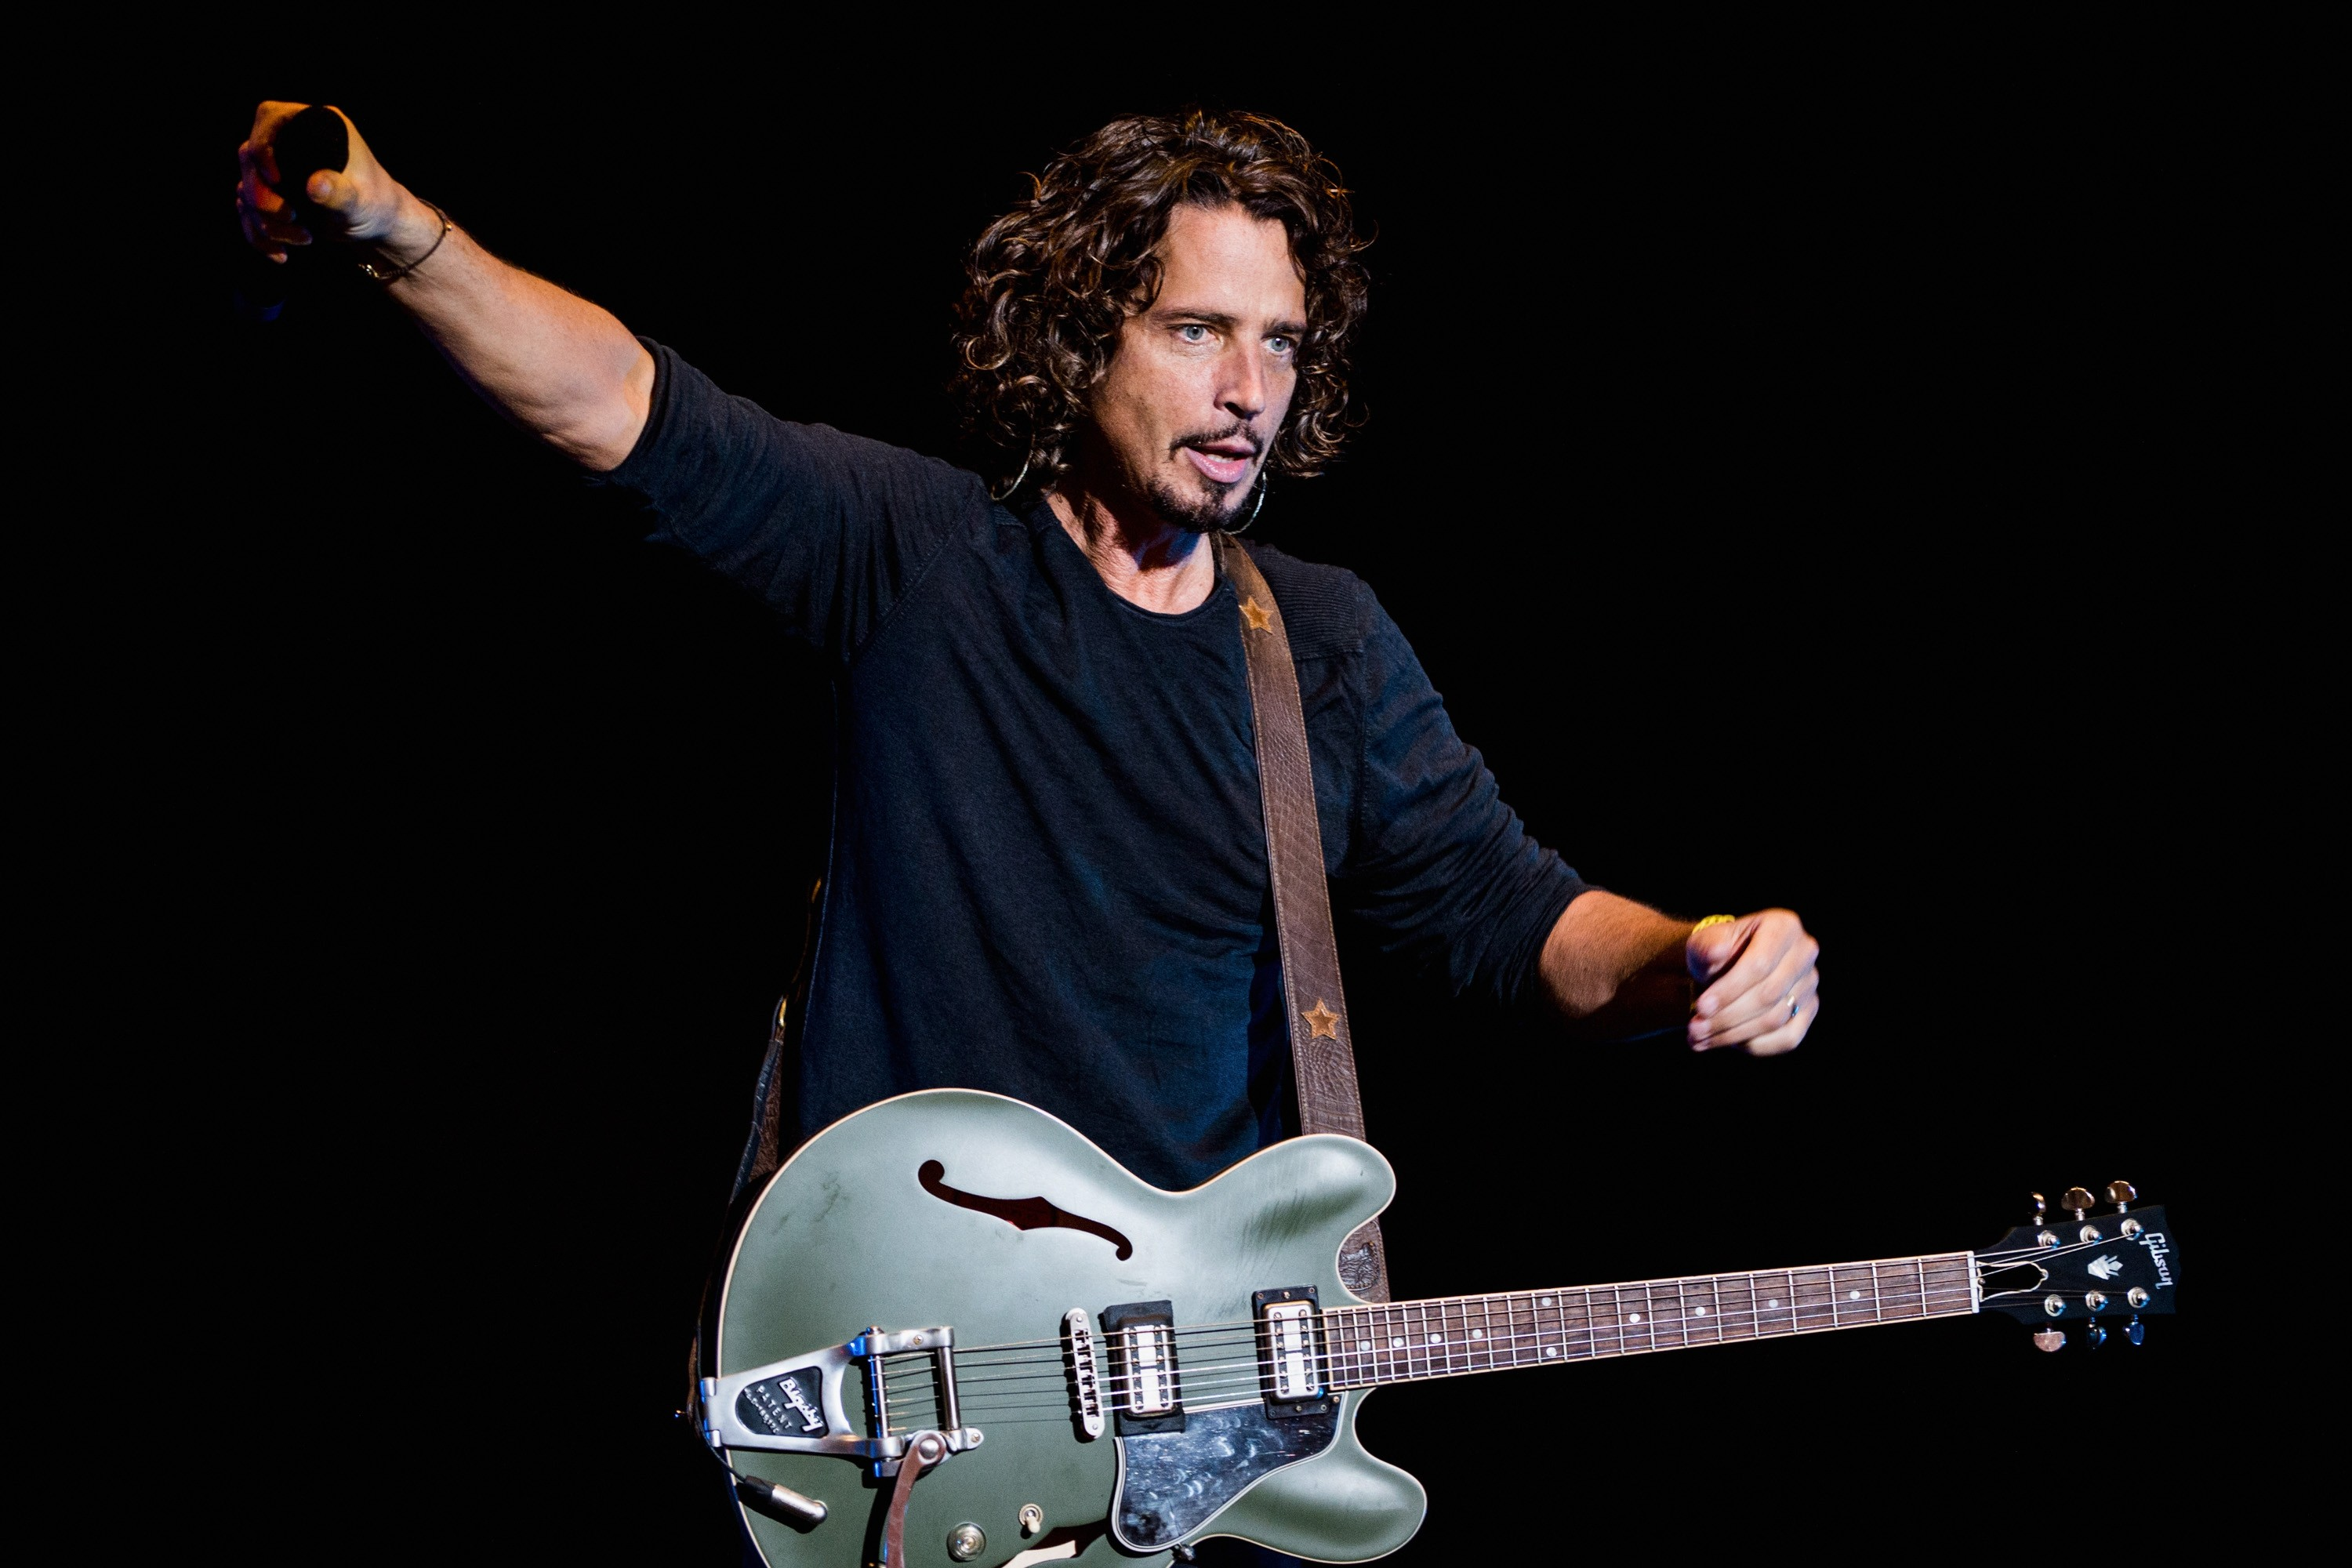 O músico Chris Cornell (1964-2017) (Foto: Getty Images)